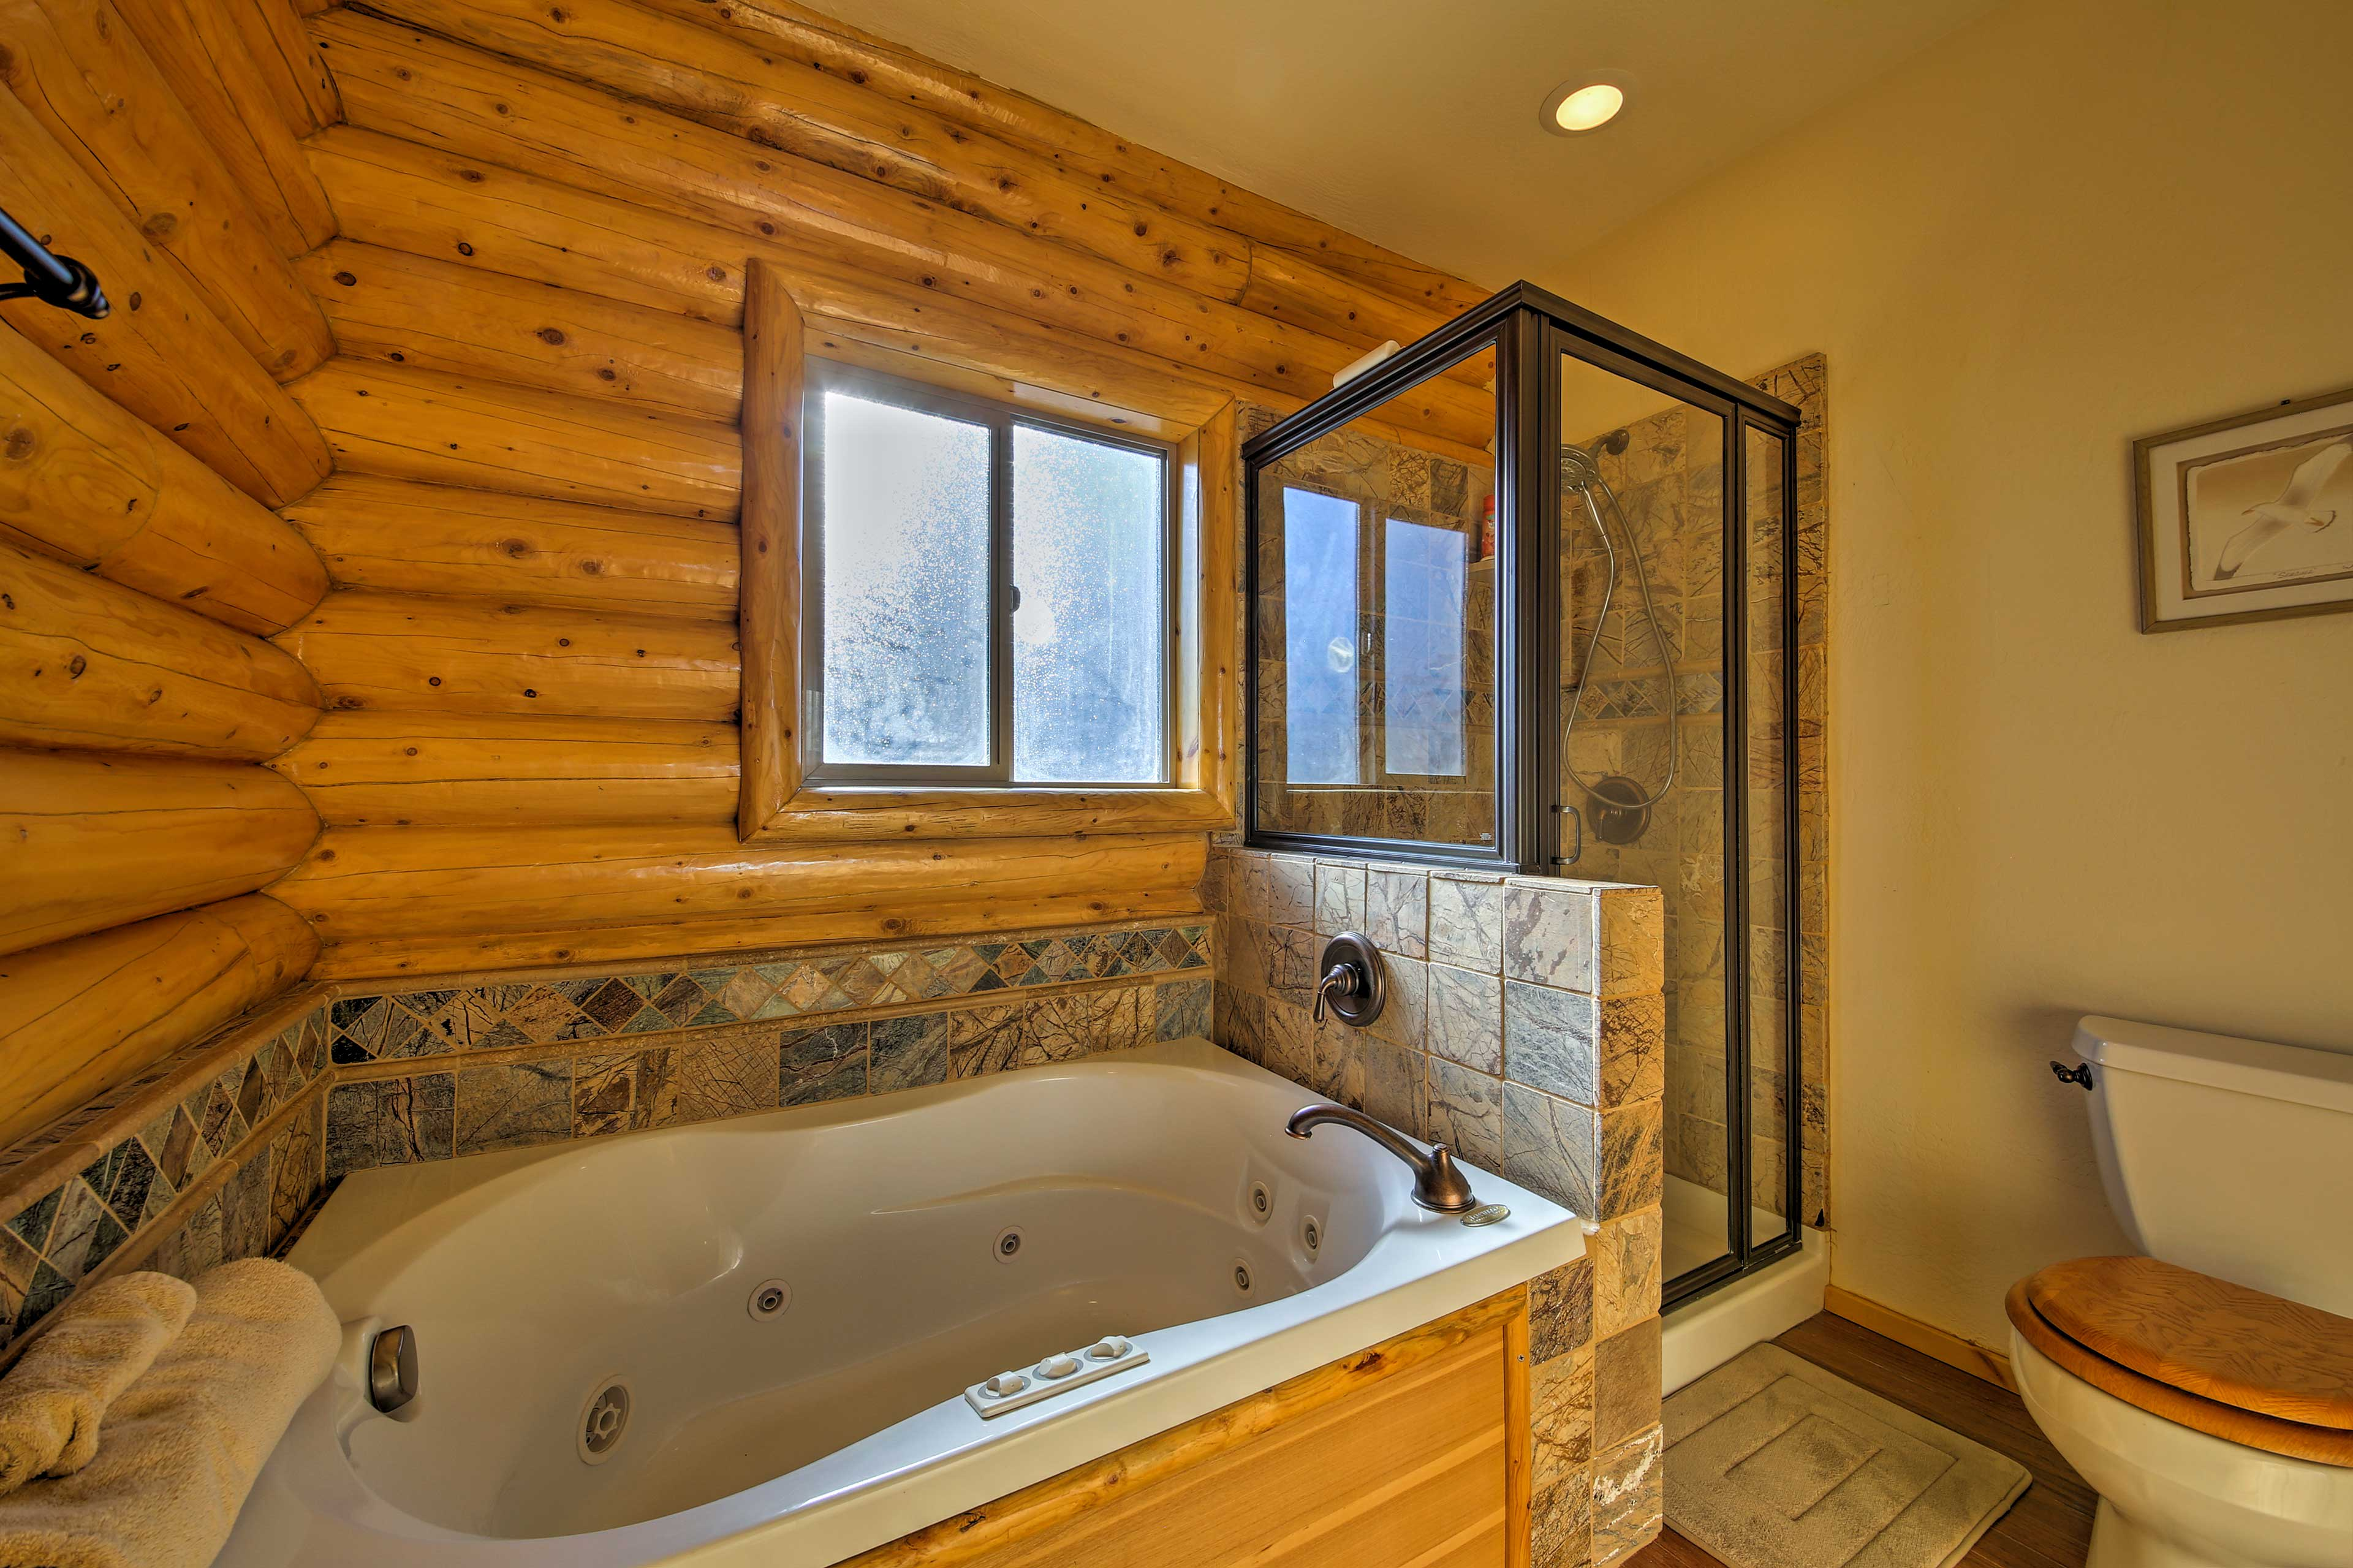 Soak in the spacious jetted tub to relax and unwind.